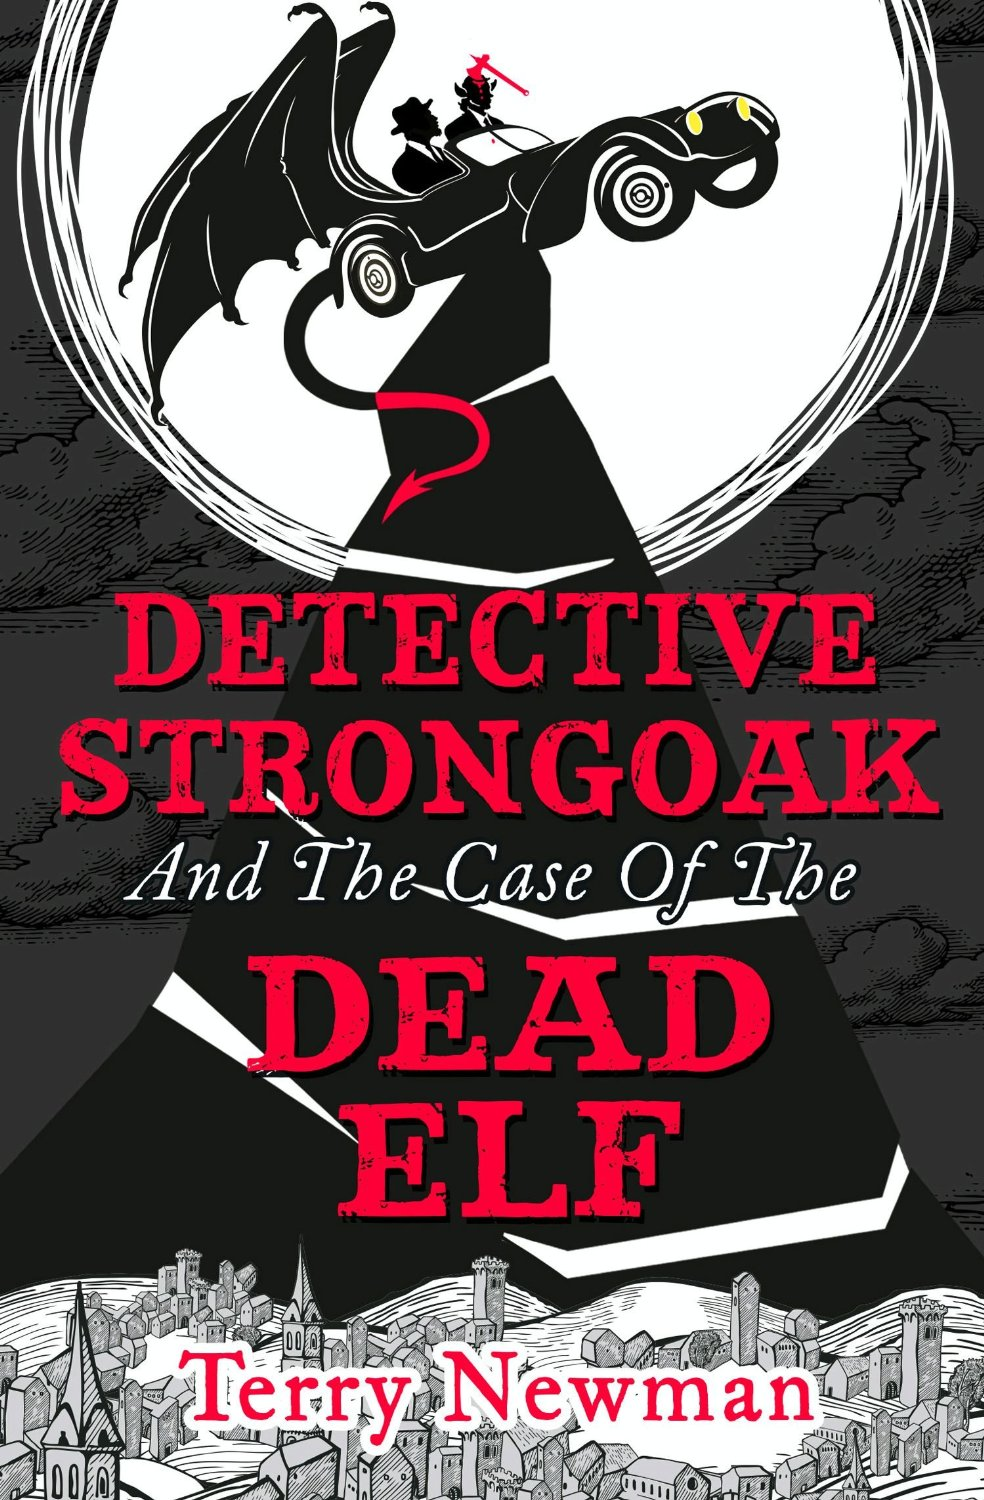 detective-strongoak-and-the-case-of-the-dead-elf_terry-newman